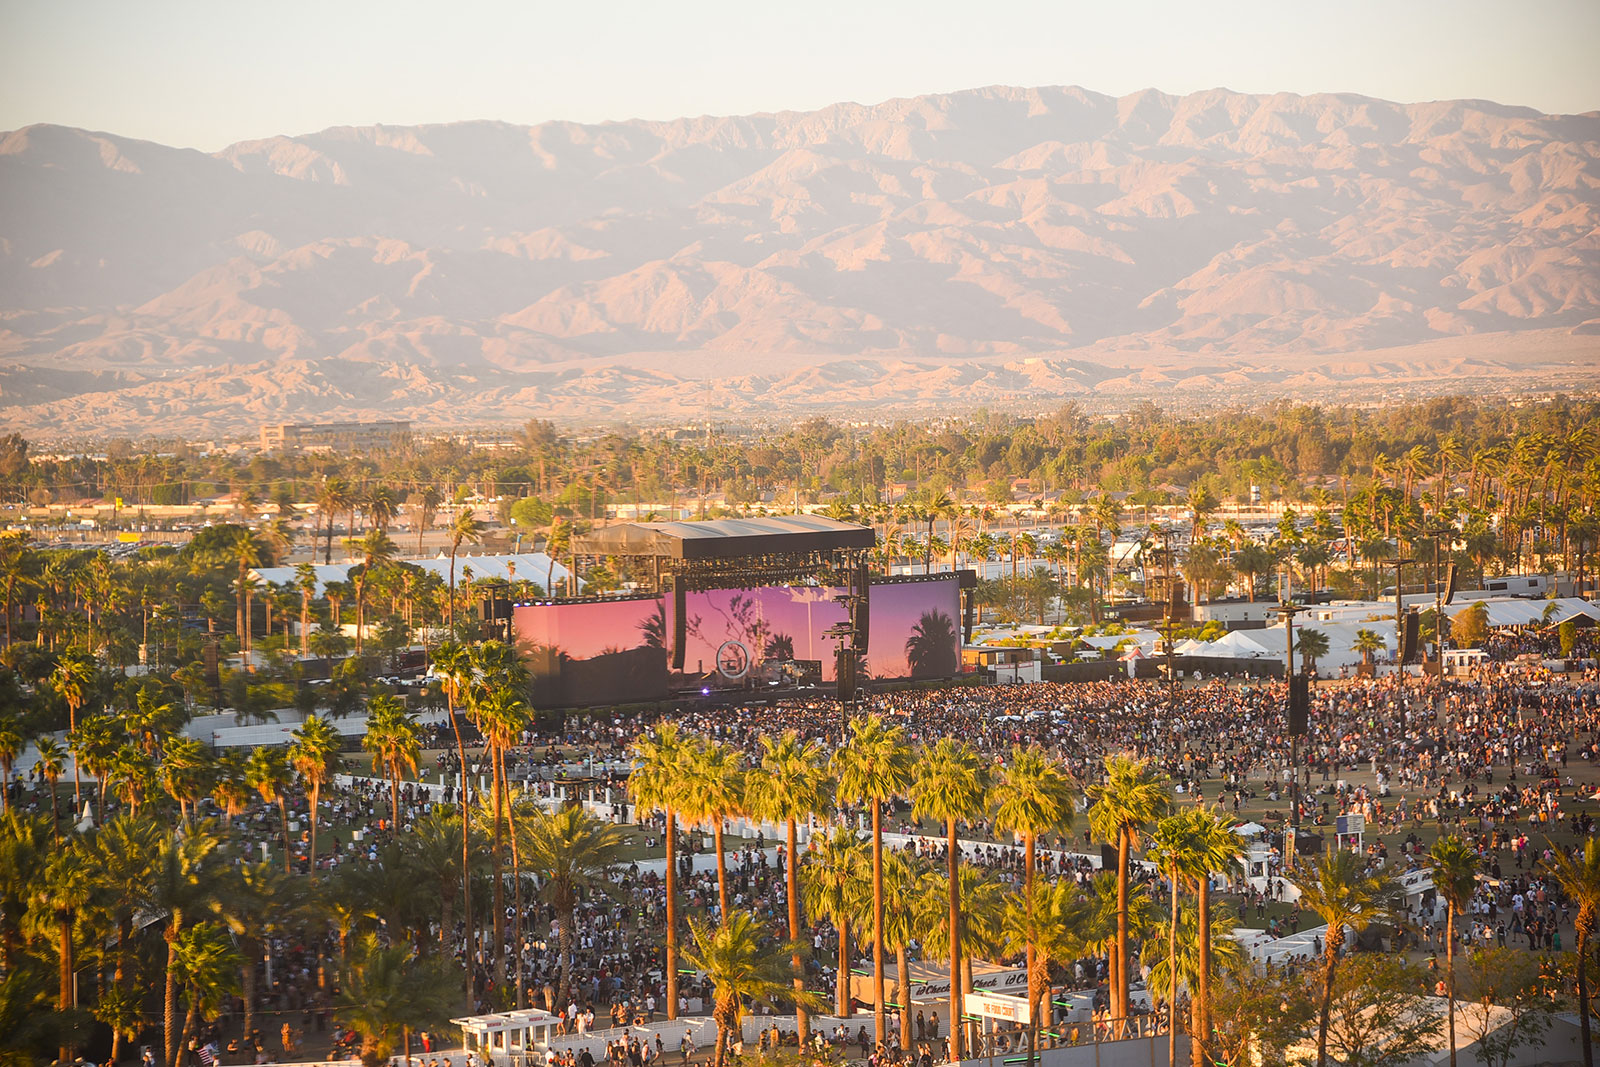 An aerial view of the 2019 Coachella Valley Music and Arts Festival in Indio, California.